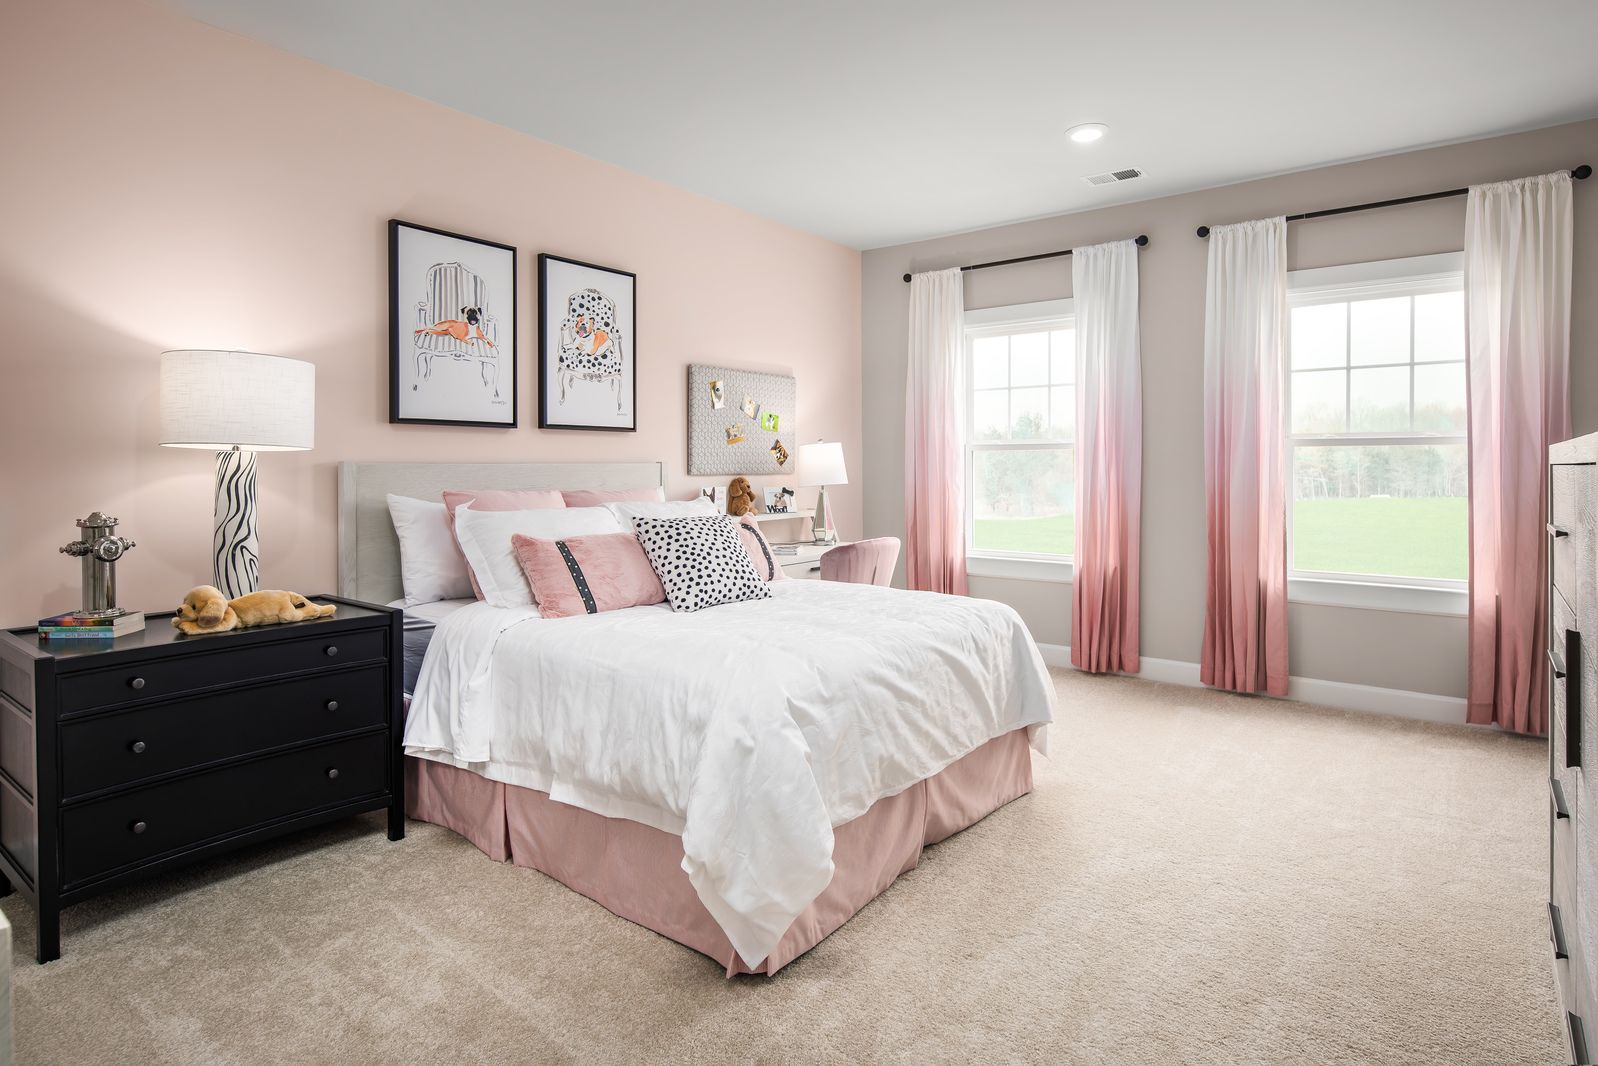 Bedroom featured in the Stratford Hall By NVHomes in Washington, MD